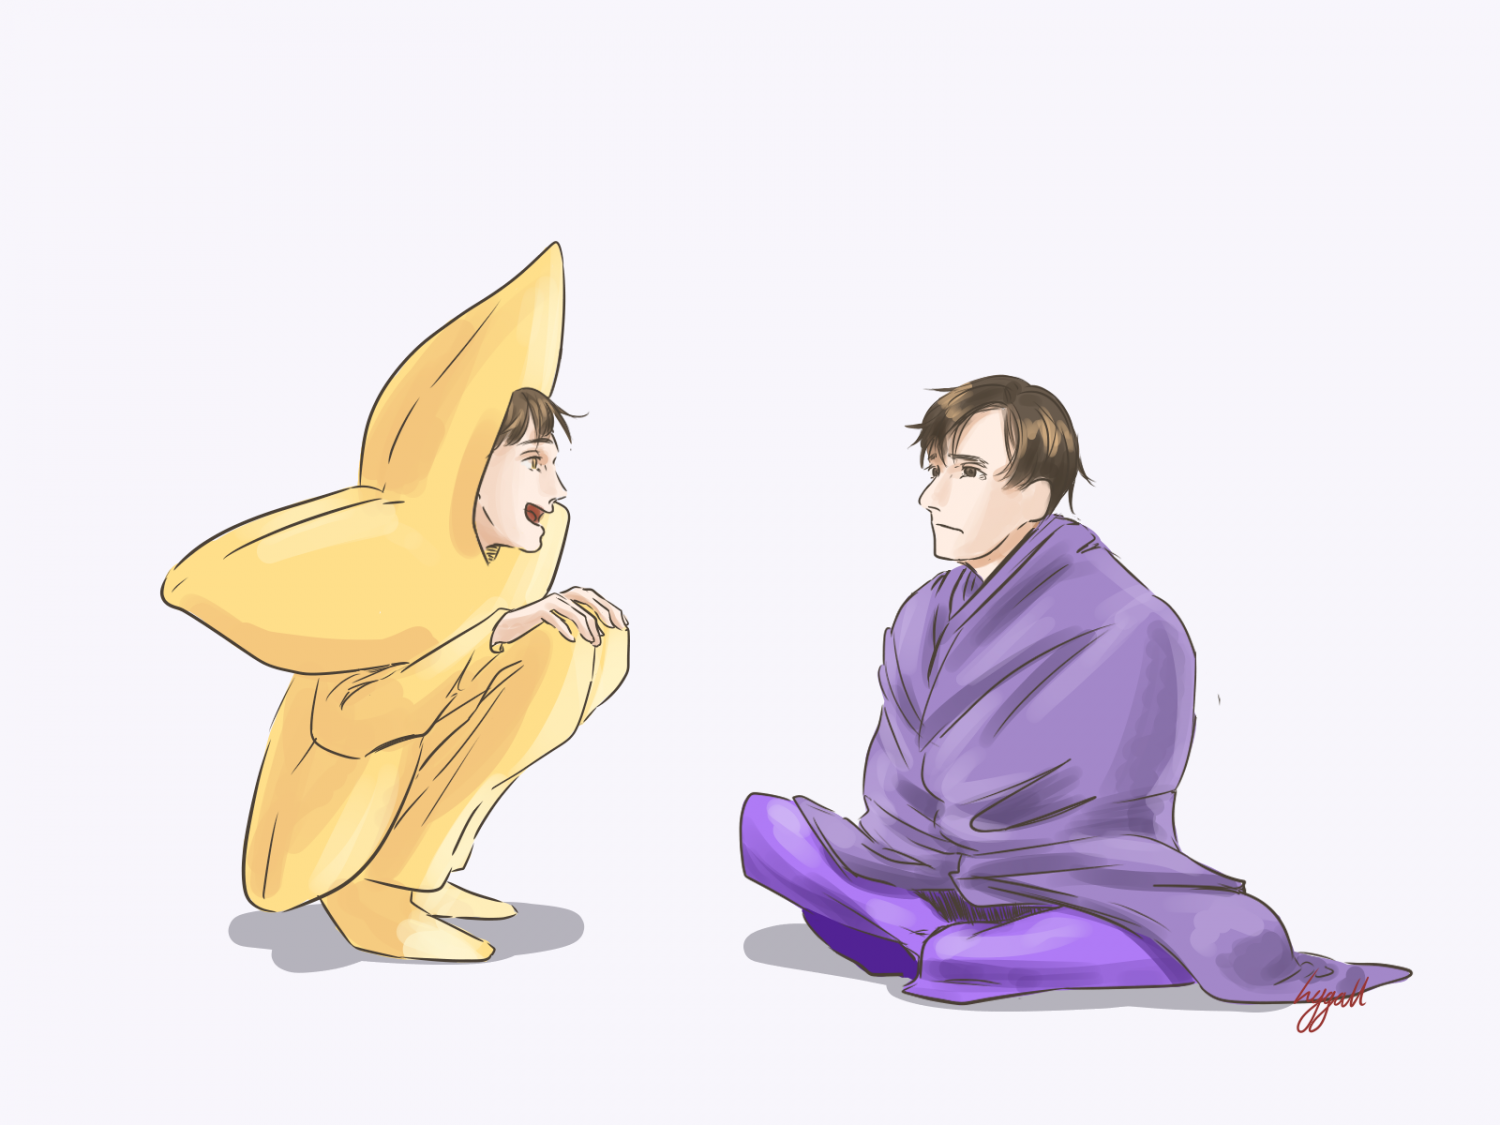 Star and Kevin in the puple blanket 1.png